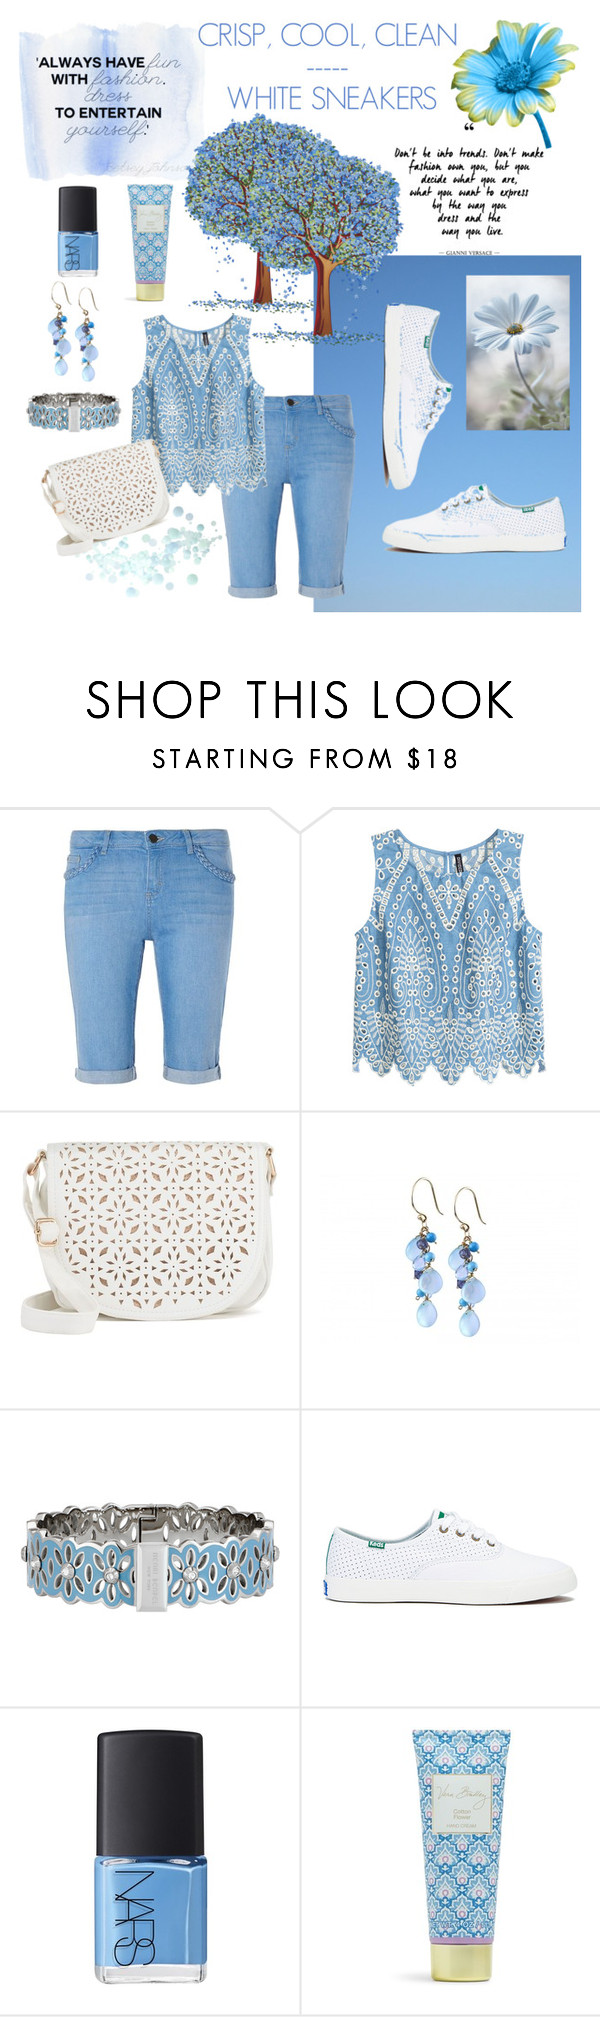 """White Sneakers"" by tjclay3 ❤ liked on Polyvore featuring Dorothy Perkins, Under One Sky, Henri Bendel, Keds, NARS Cosmetics, Vera Bradley, contest and whitesneakers"